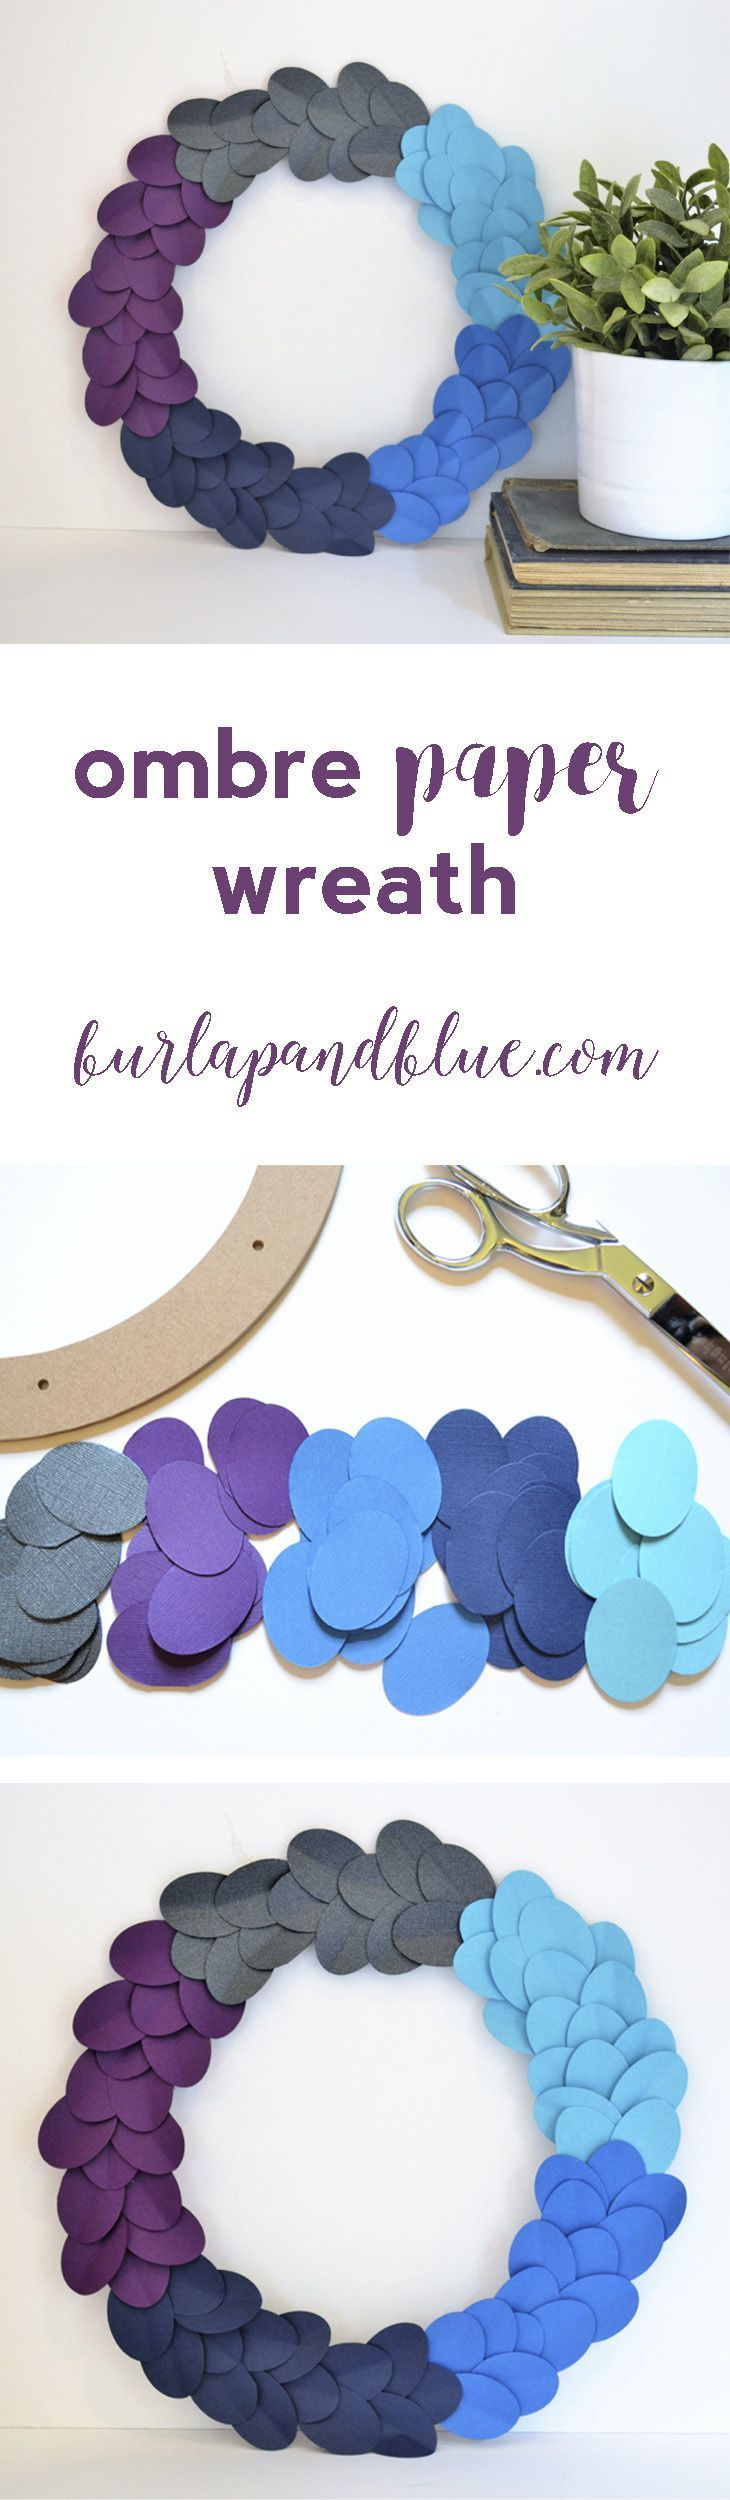 a fun ombre paper wreath tutorial in shades of purple, gray, turquoise, and navy blue! #FallIntoClean #ad